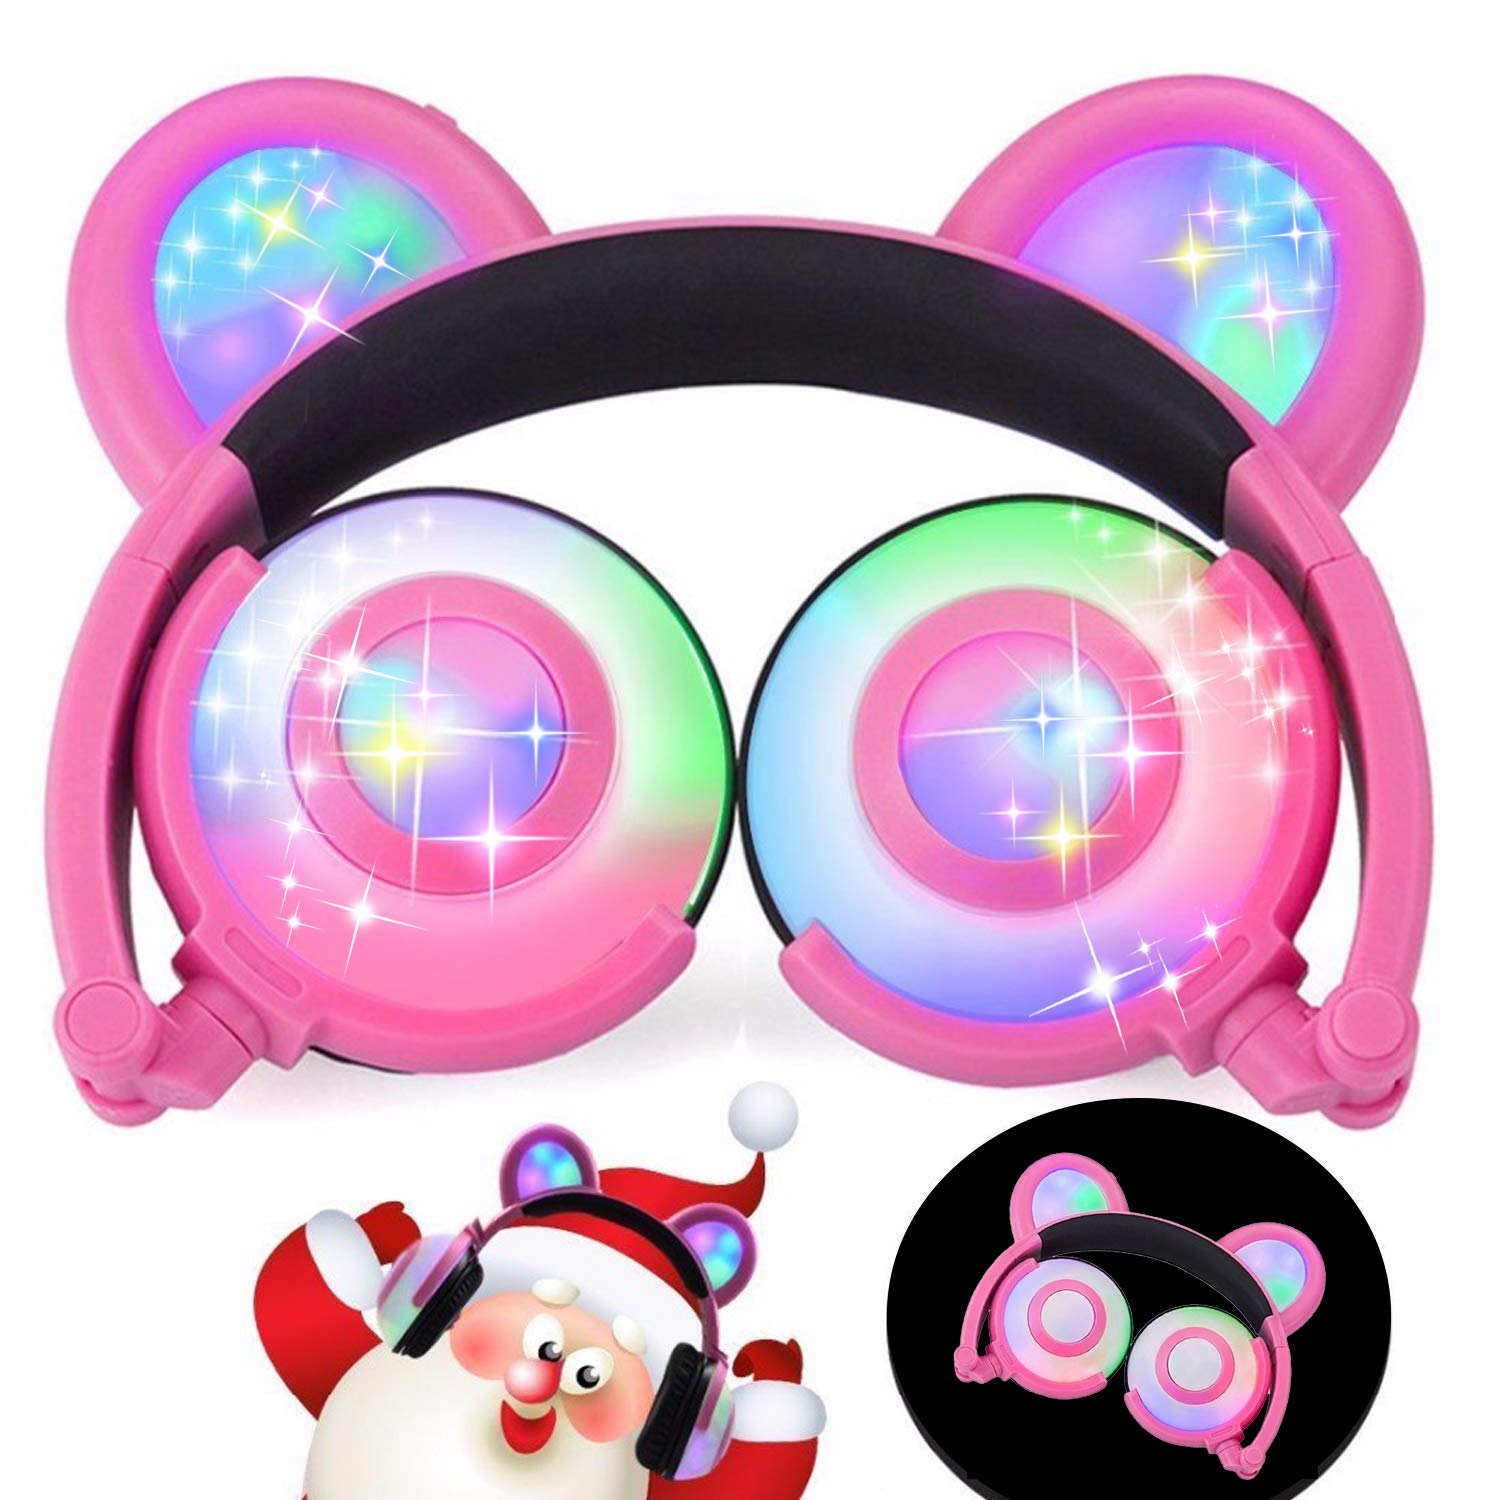 Headphones Cat Ear Inspired Headband - Universal USB Rechargeable Foldable LED Lights Gaming Headsets Adults and Kids Girls Flashing Headphones for Phone Laptop Mp3 3.5mm Jack Device (T107 Bule-EP2) EarnCore